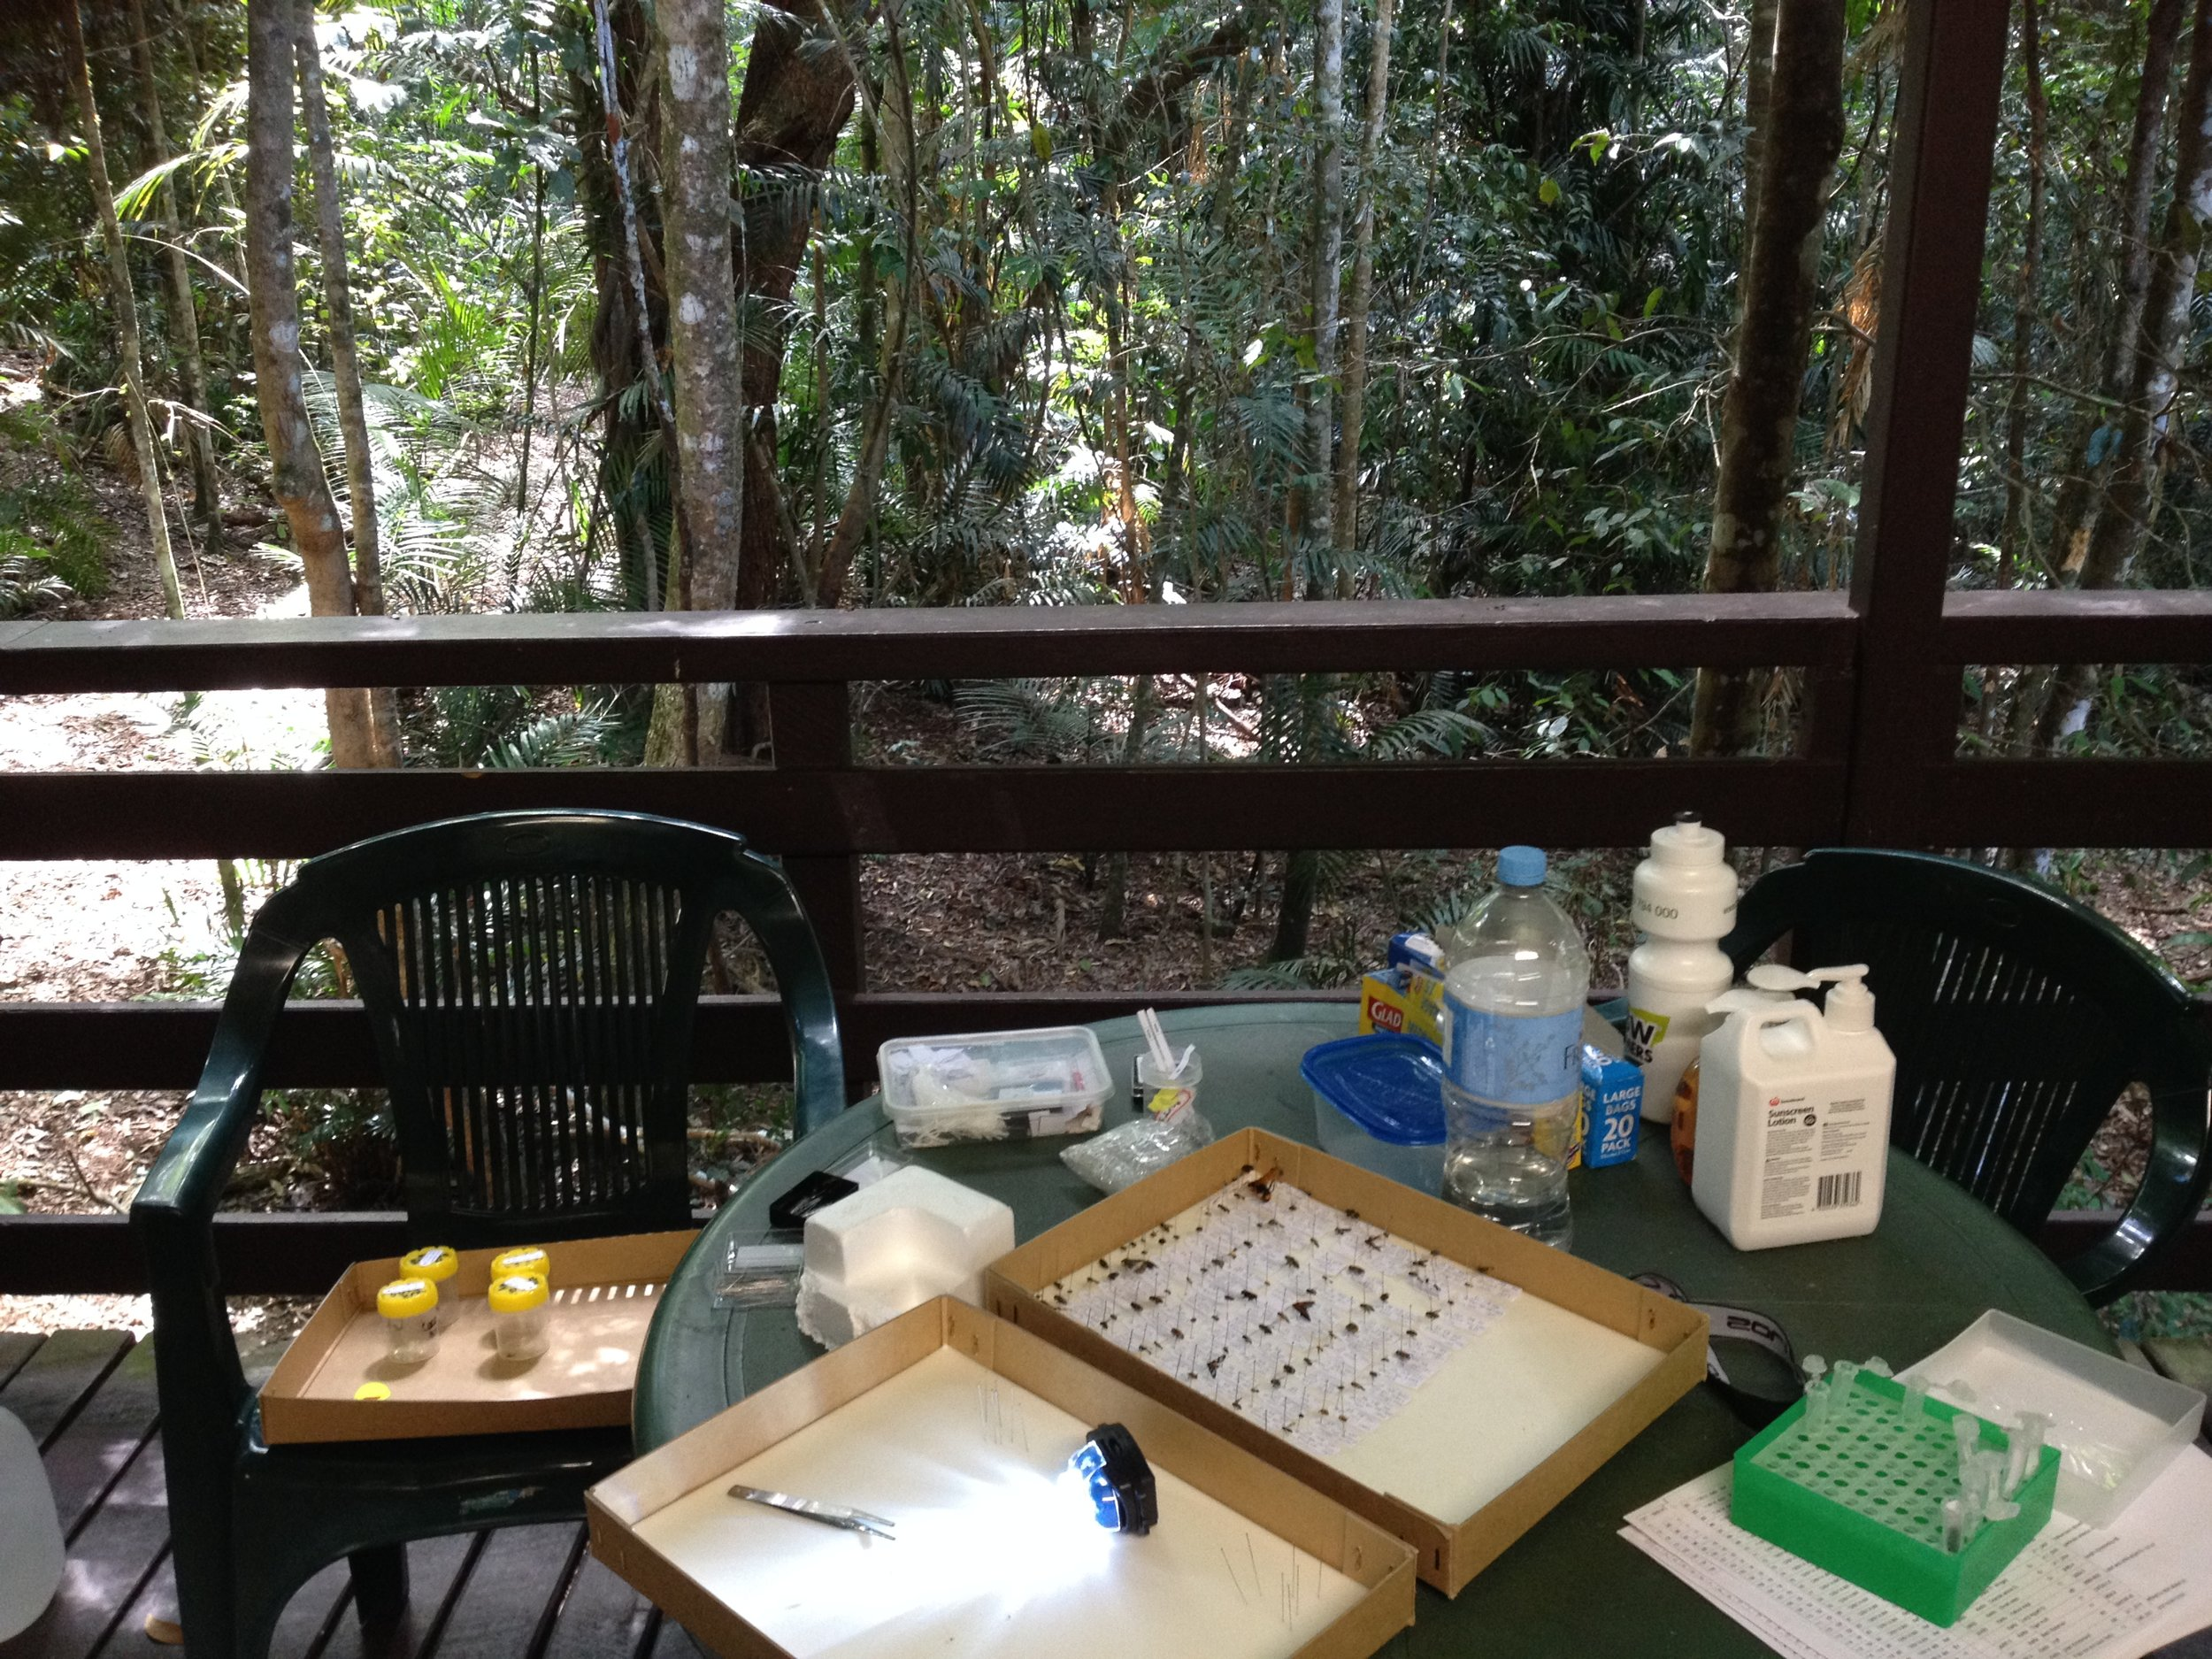 Pinning insects is all in a day's work